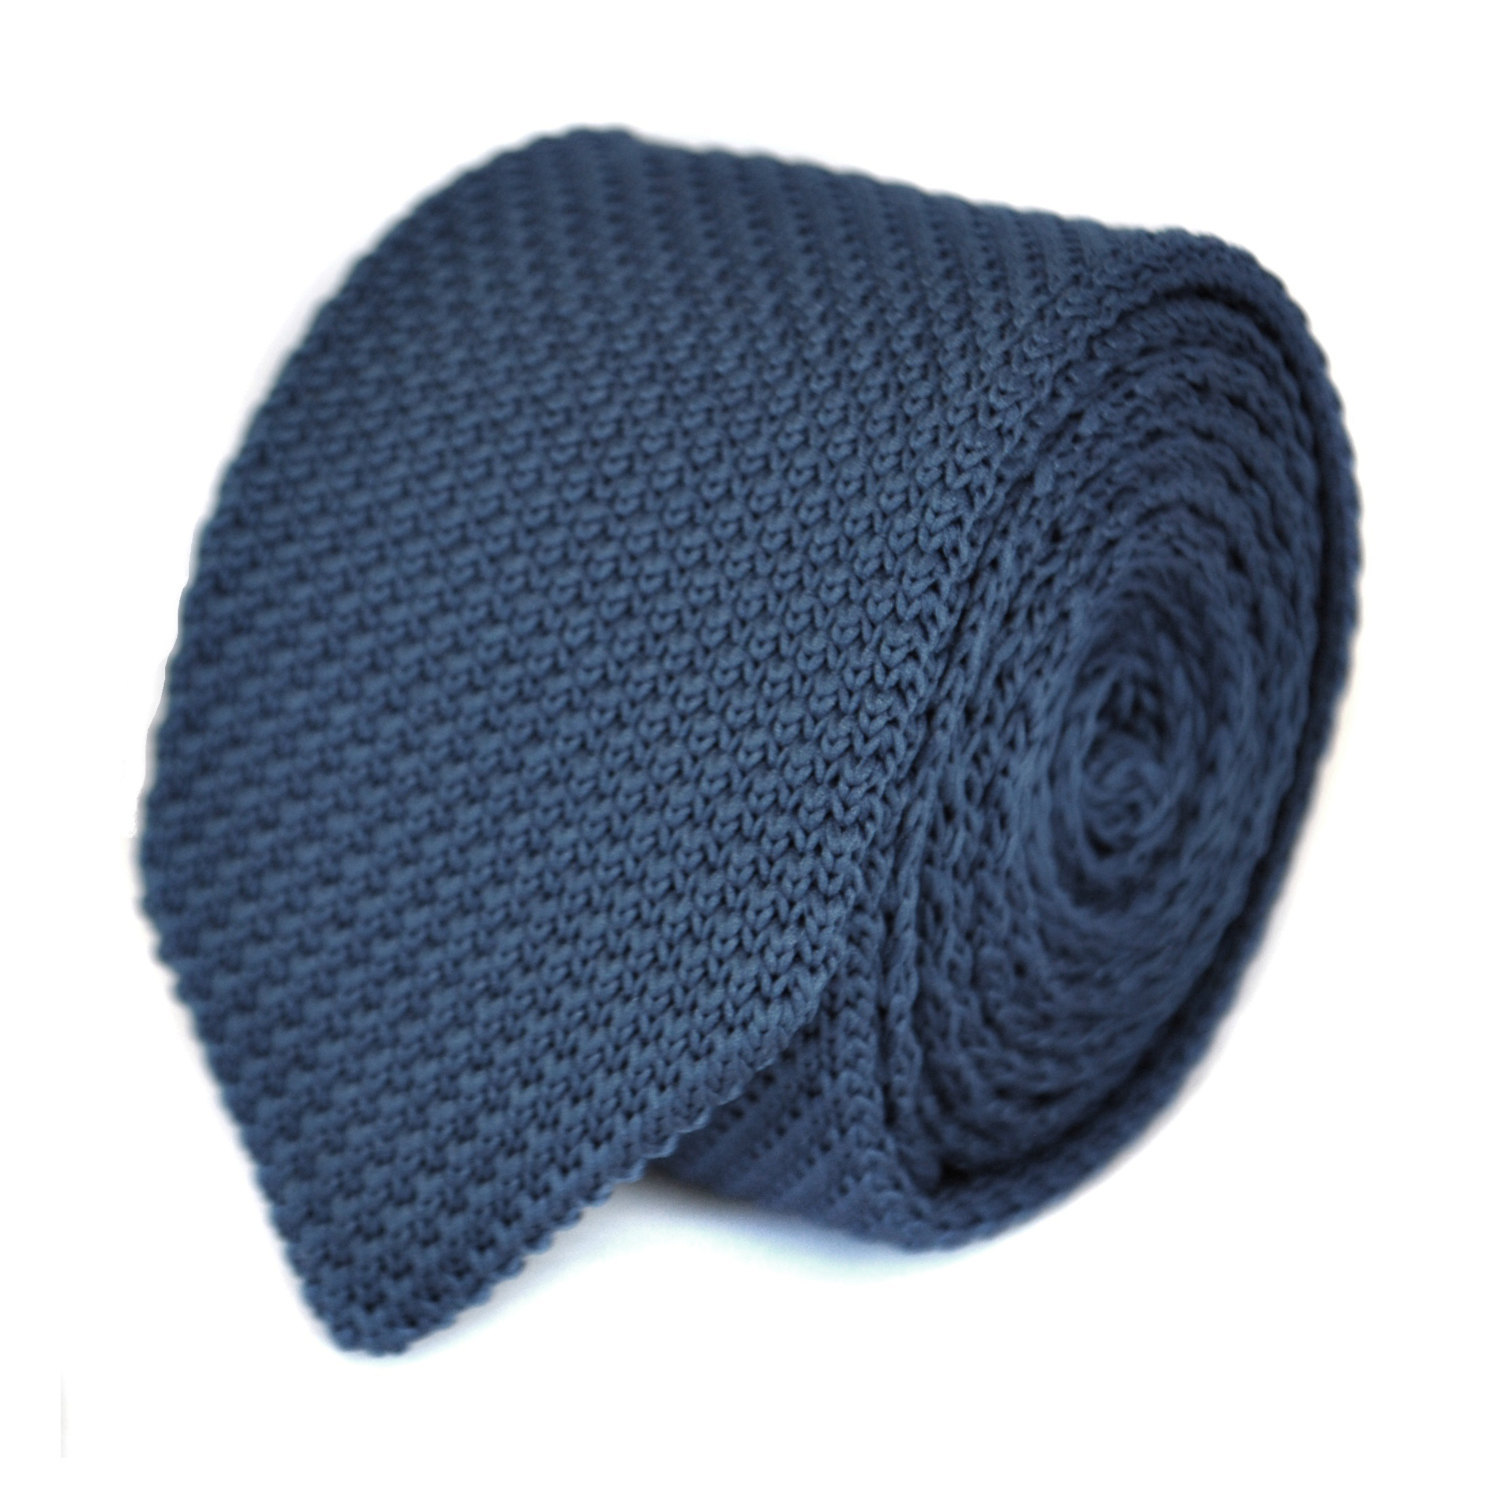 navy blue plain knitted tie with pointed end by Frederick Thomas FT1860a in stan